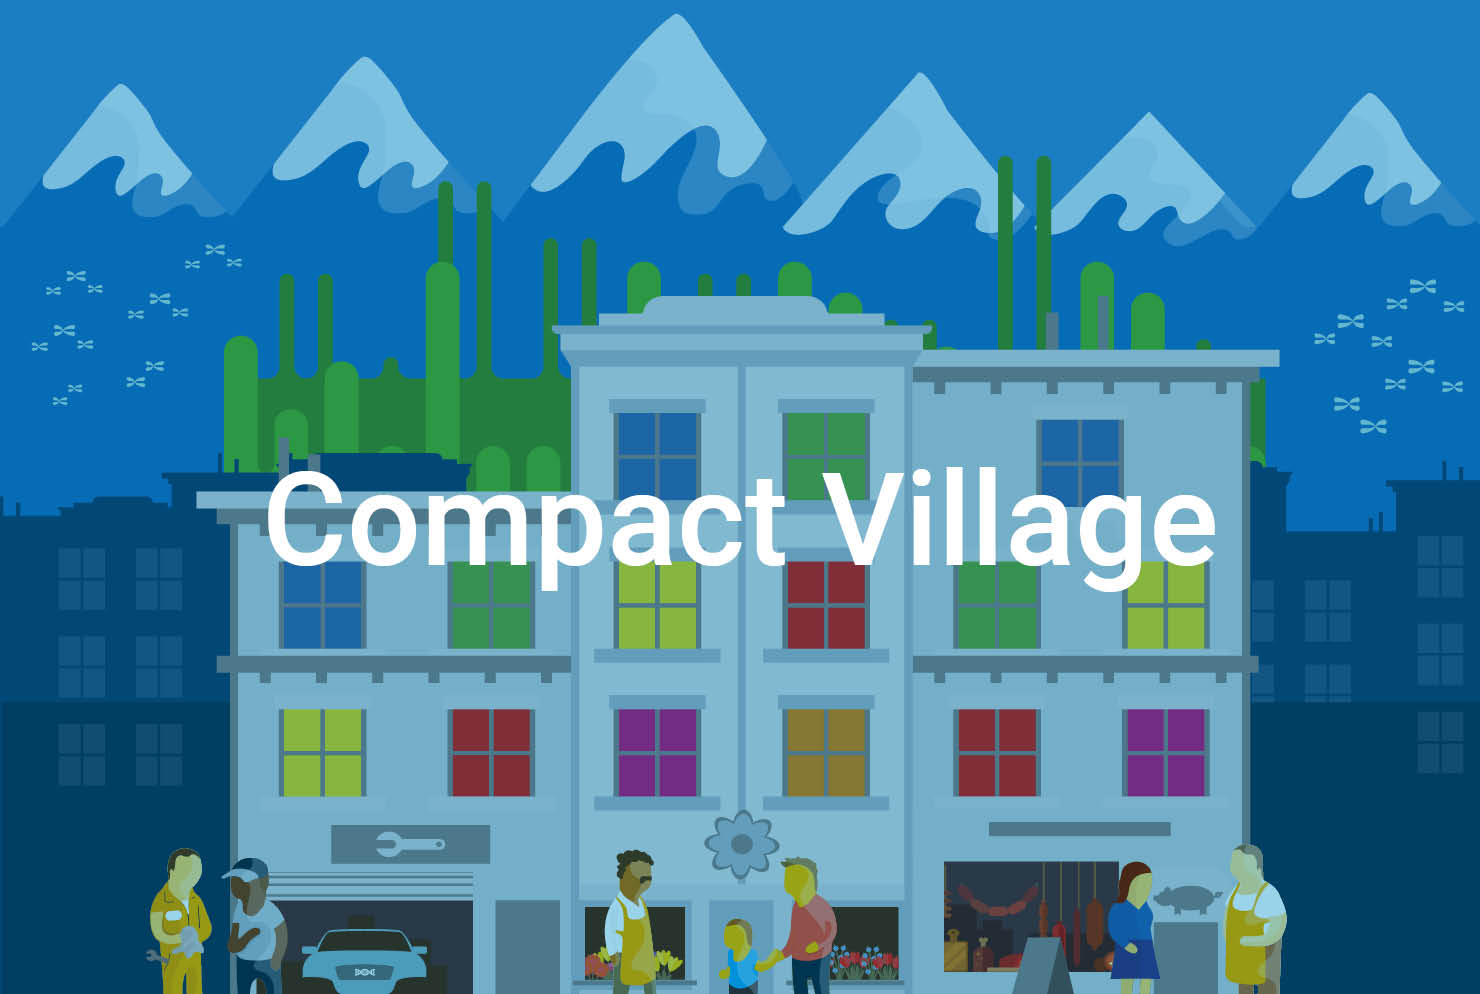 compact-village-image